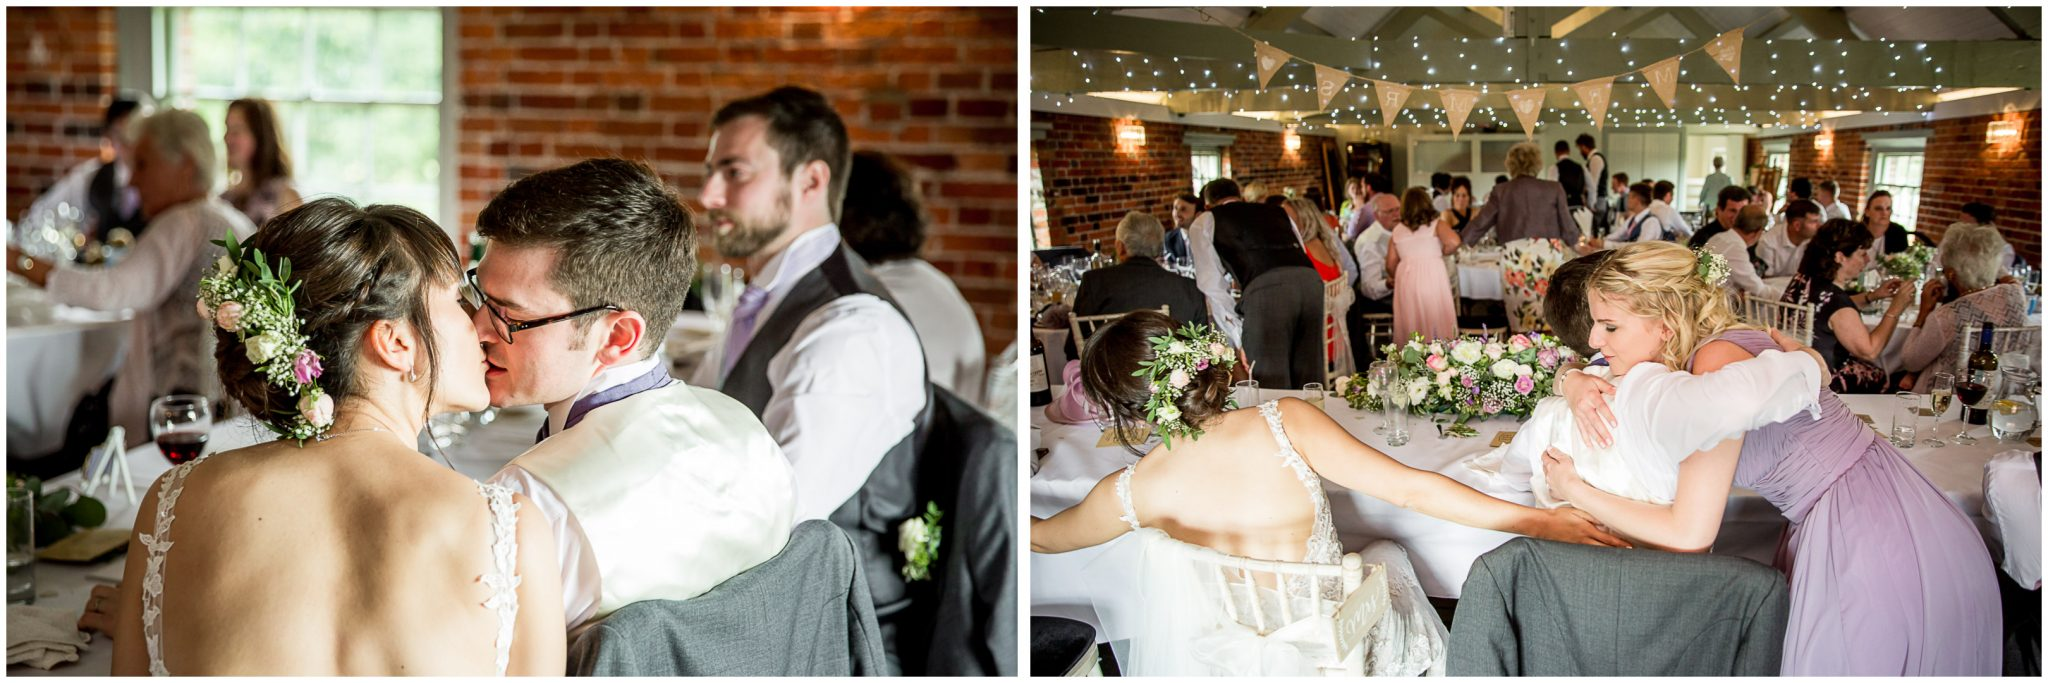 Sopley Mill wedding photography hugs and kisses at end of speeches